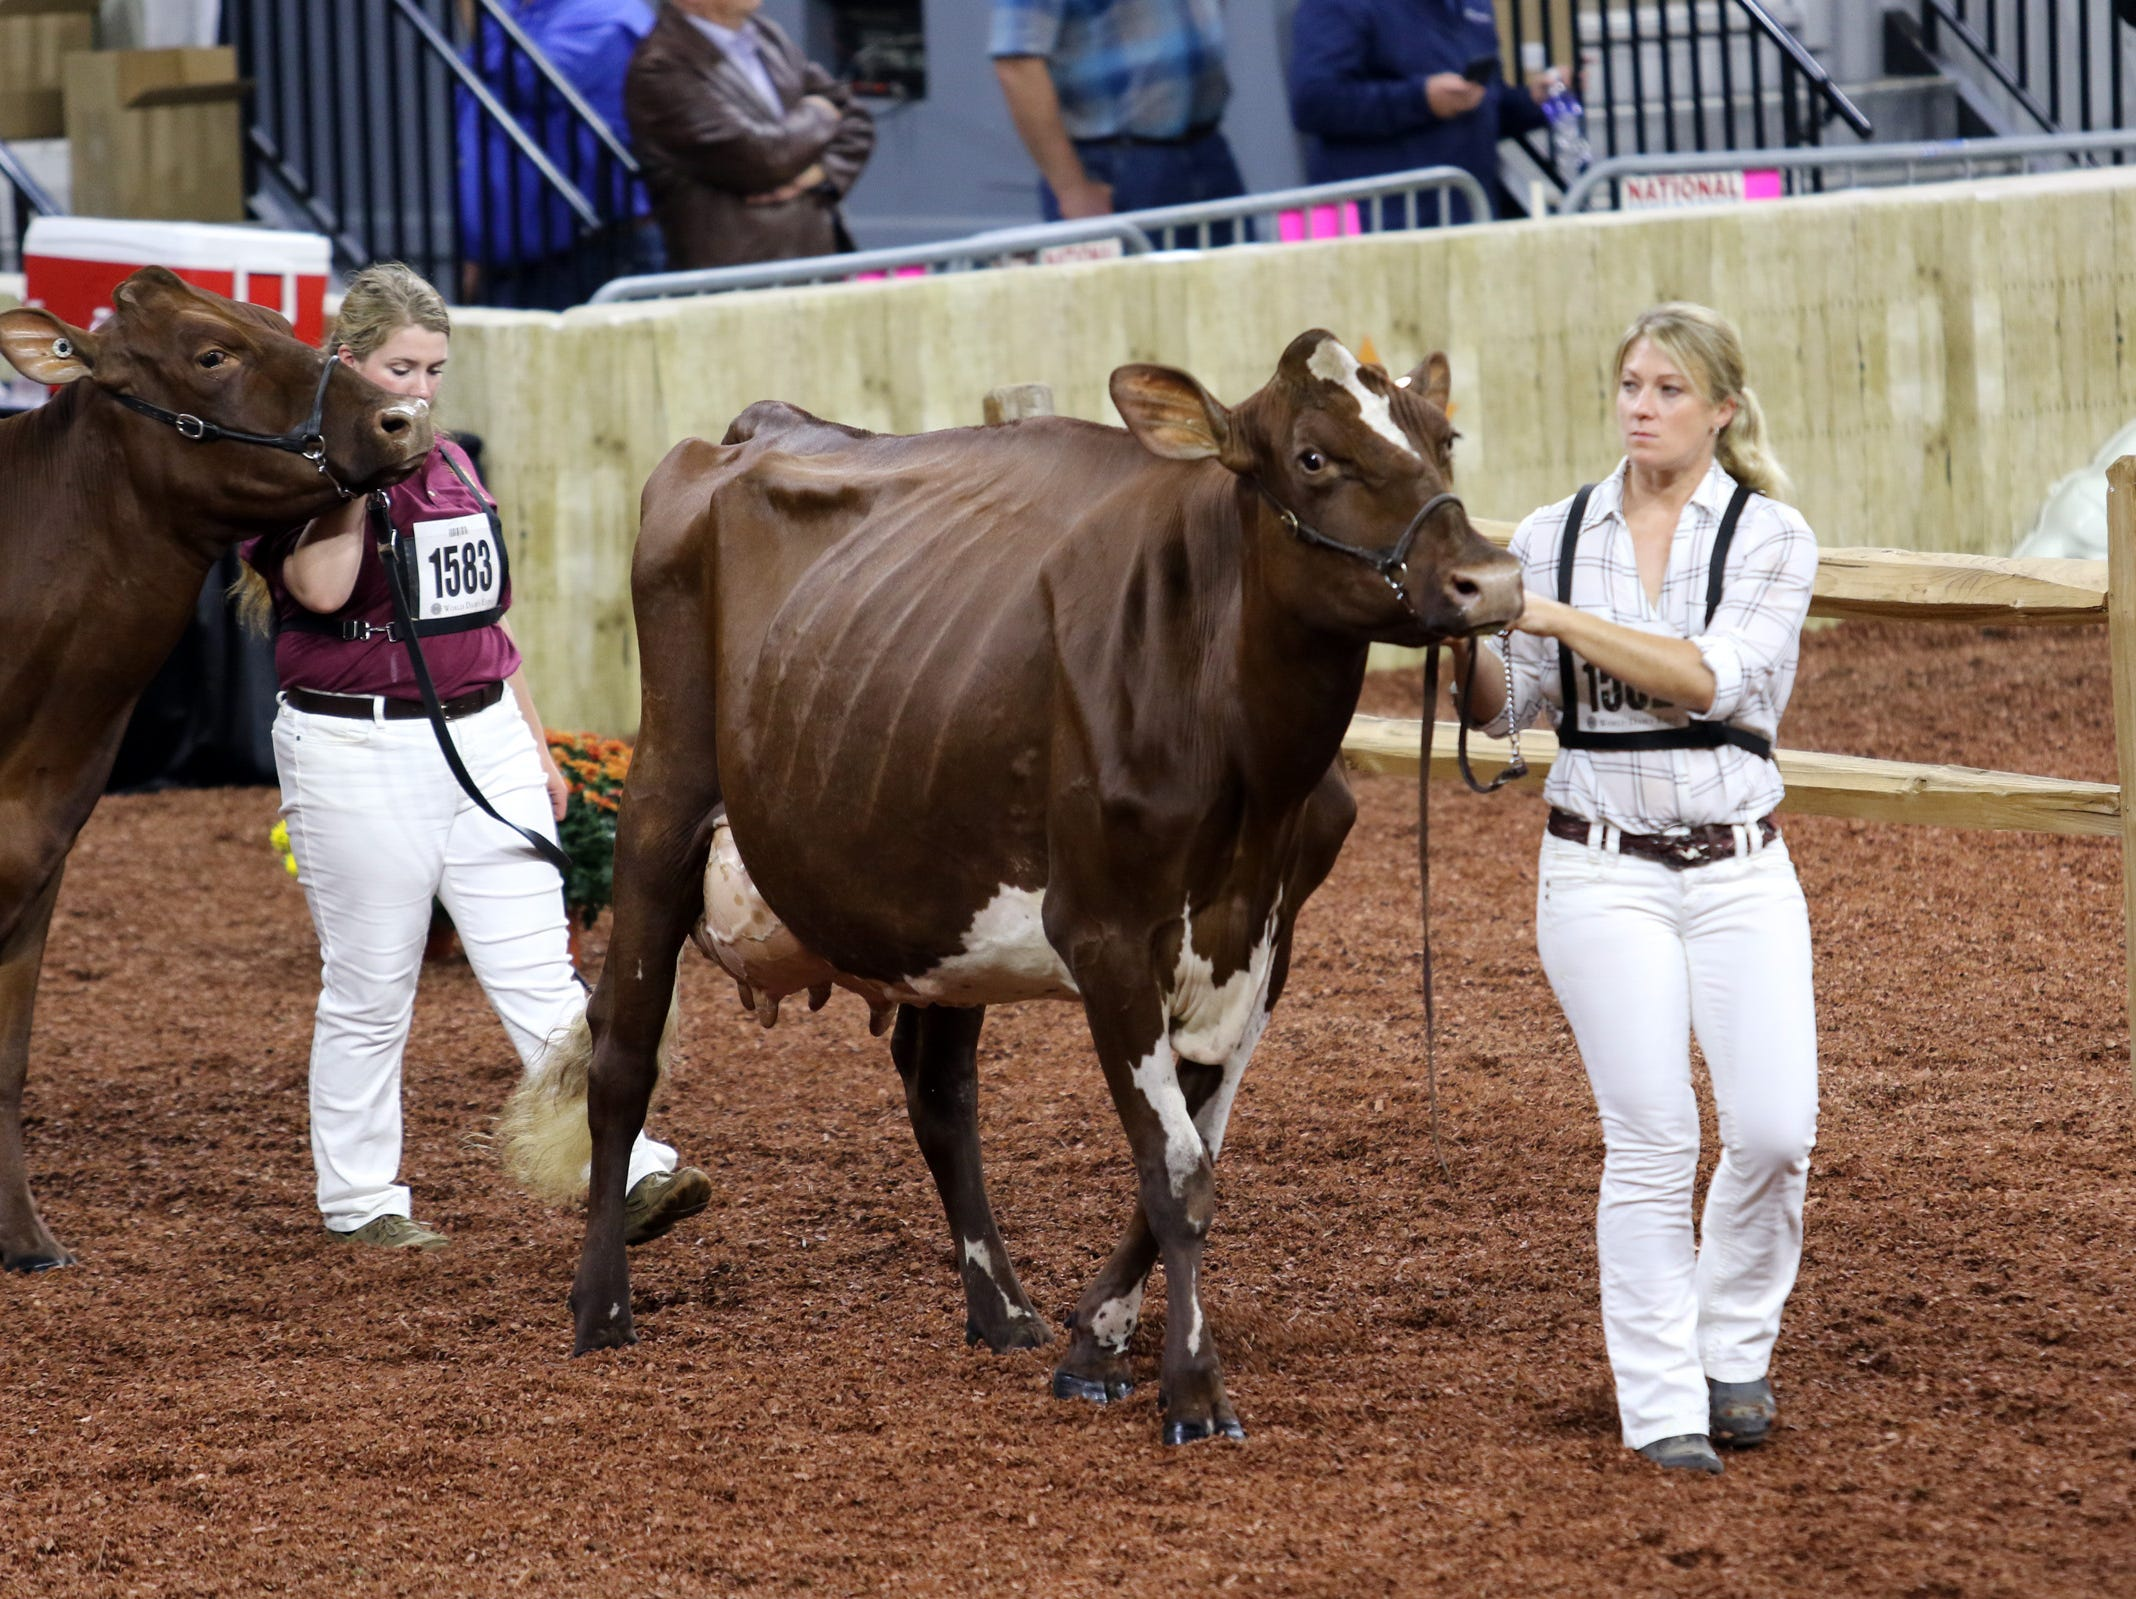 Cows are walked around the ring during international judging at World Dairy Expo on Oct. 3 in Madison.